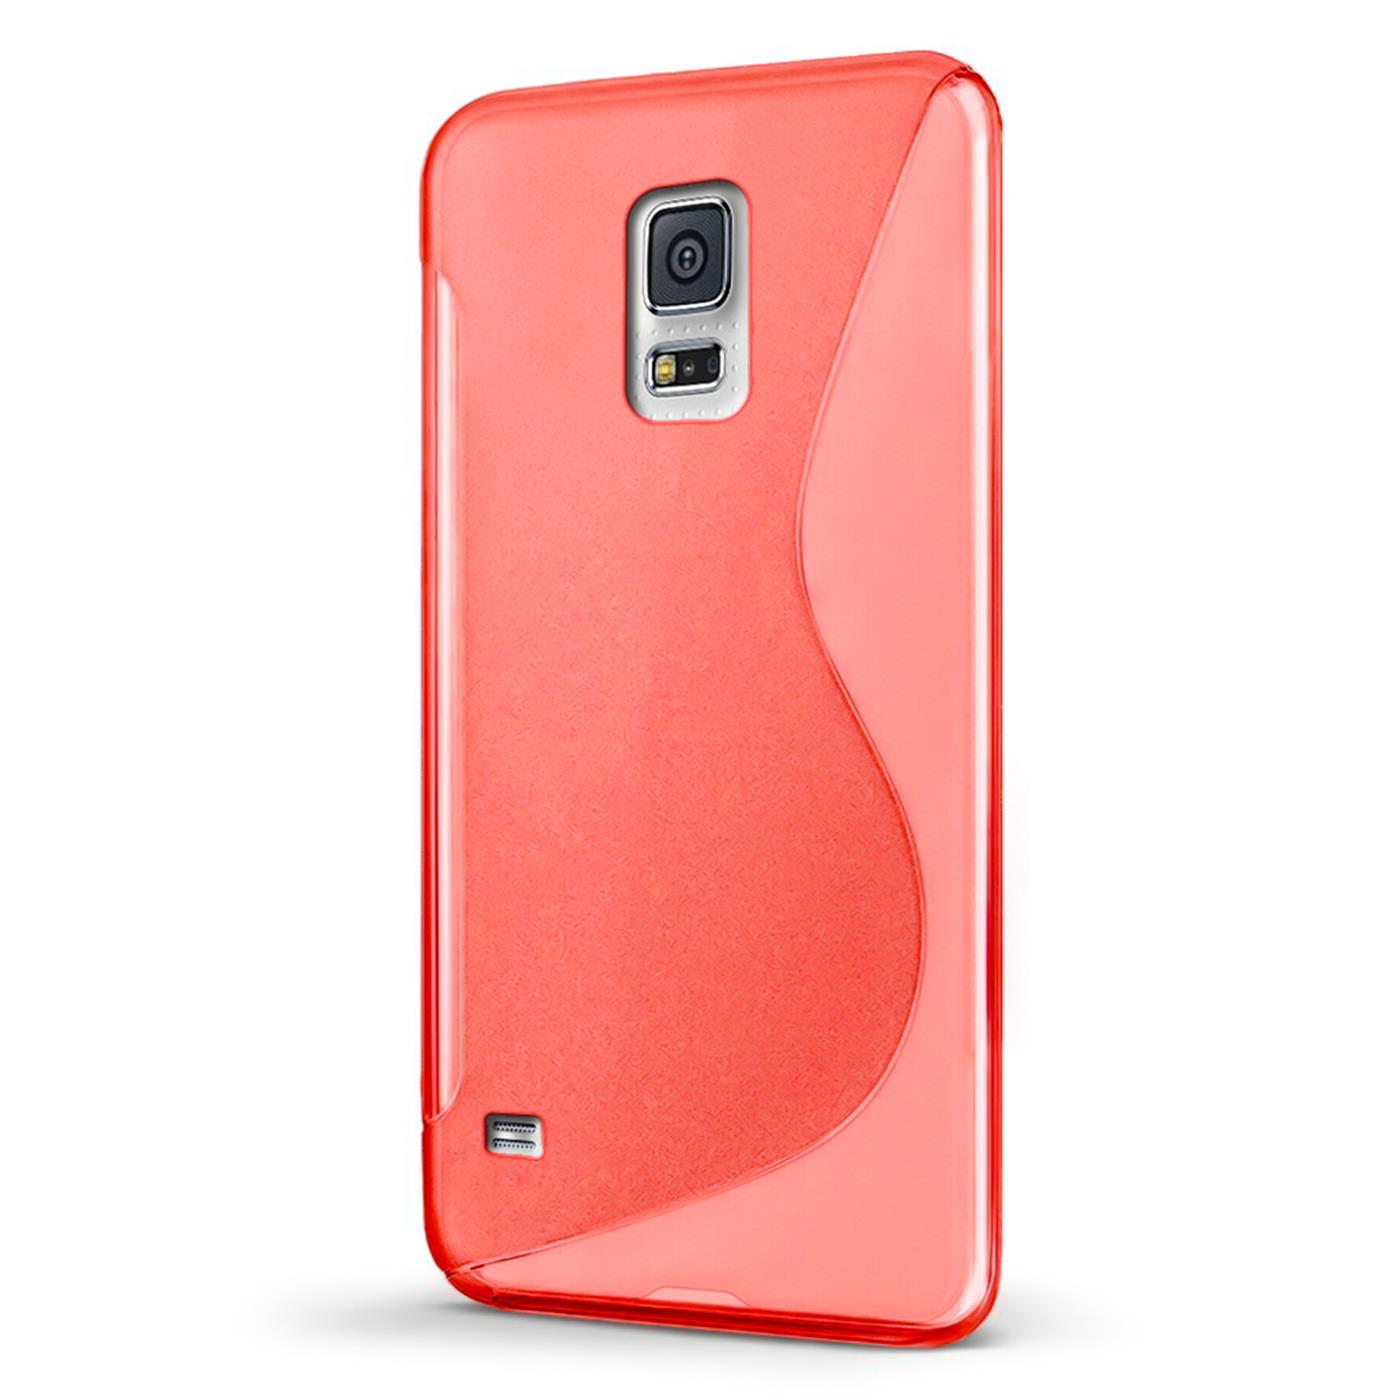 Samsung-Galaxy-s5-Neo-Silikon-Gel-S-Line-Case-Cover-Ultra-Thin-Slim-Back-Bumper Indexbild 16